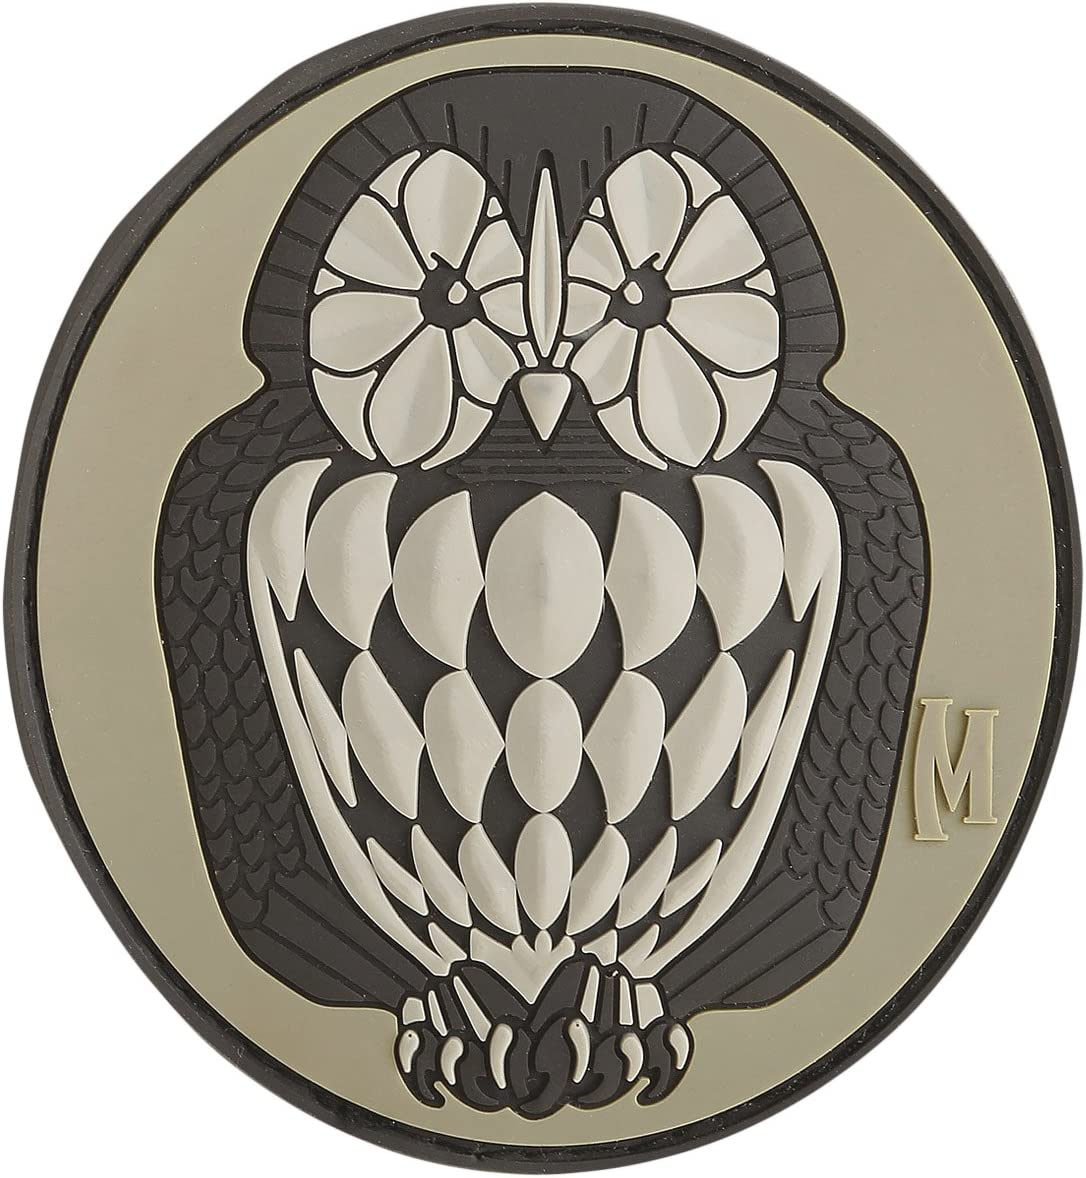 Morton HomeOwl Head PVC Patch Black